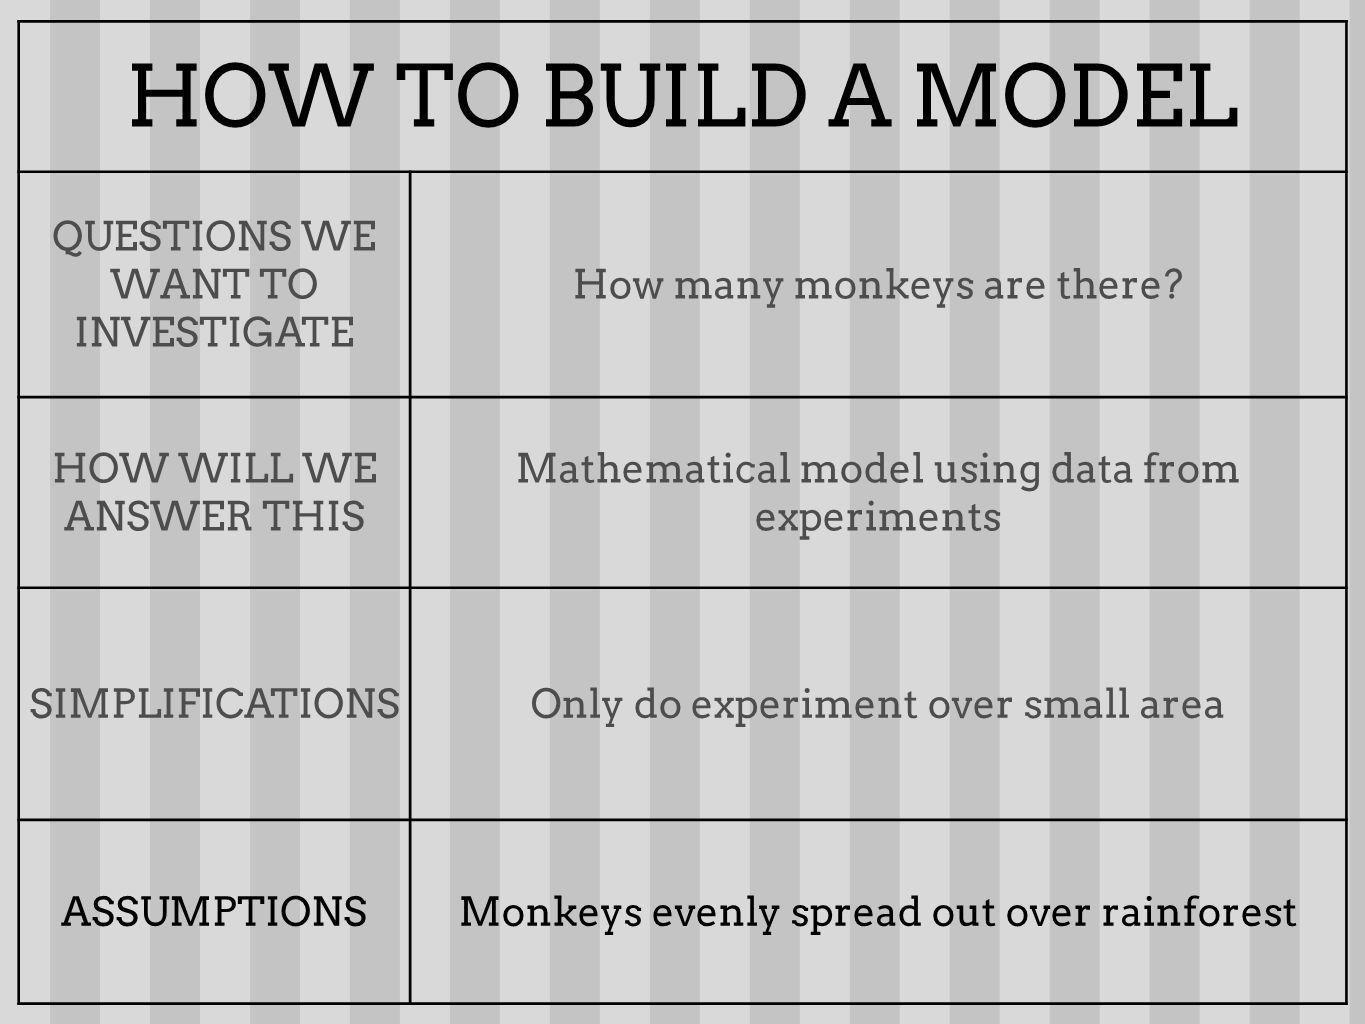 HOW TO BUILD A MODEL QUESTIONS WE WANT TO INVESTIGATE How many monkeys are there? HOW WILL WE ANSWER THIS Mathematical model using data from experimen